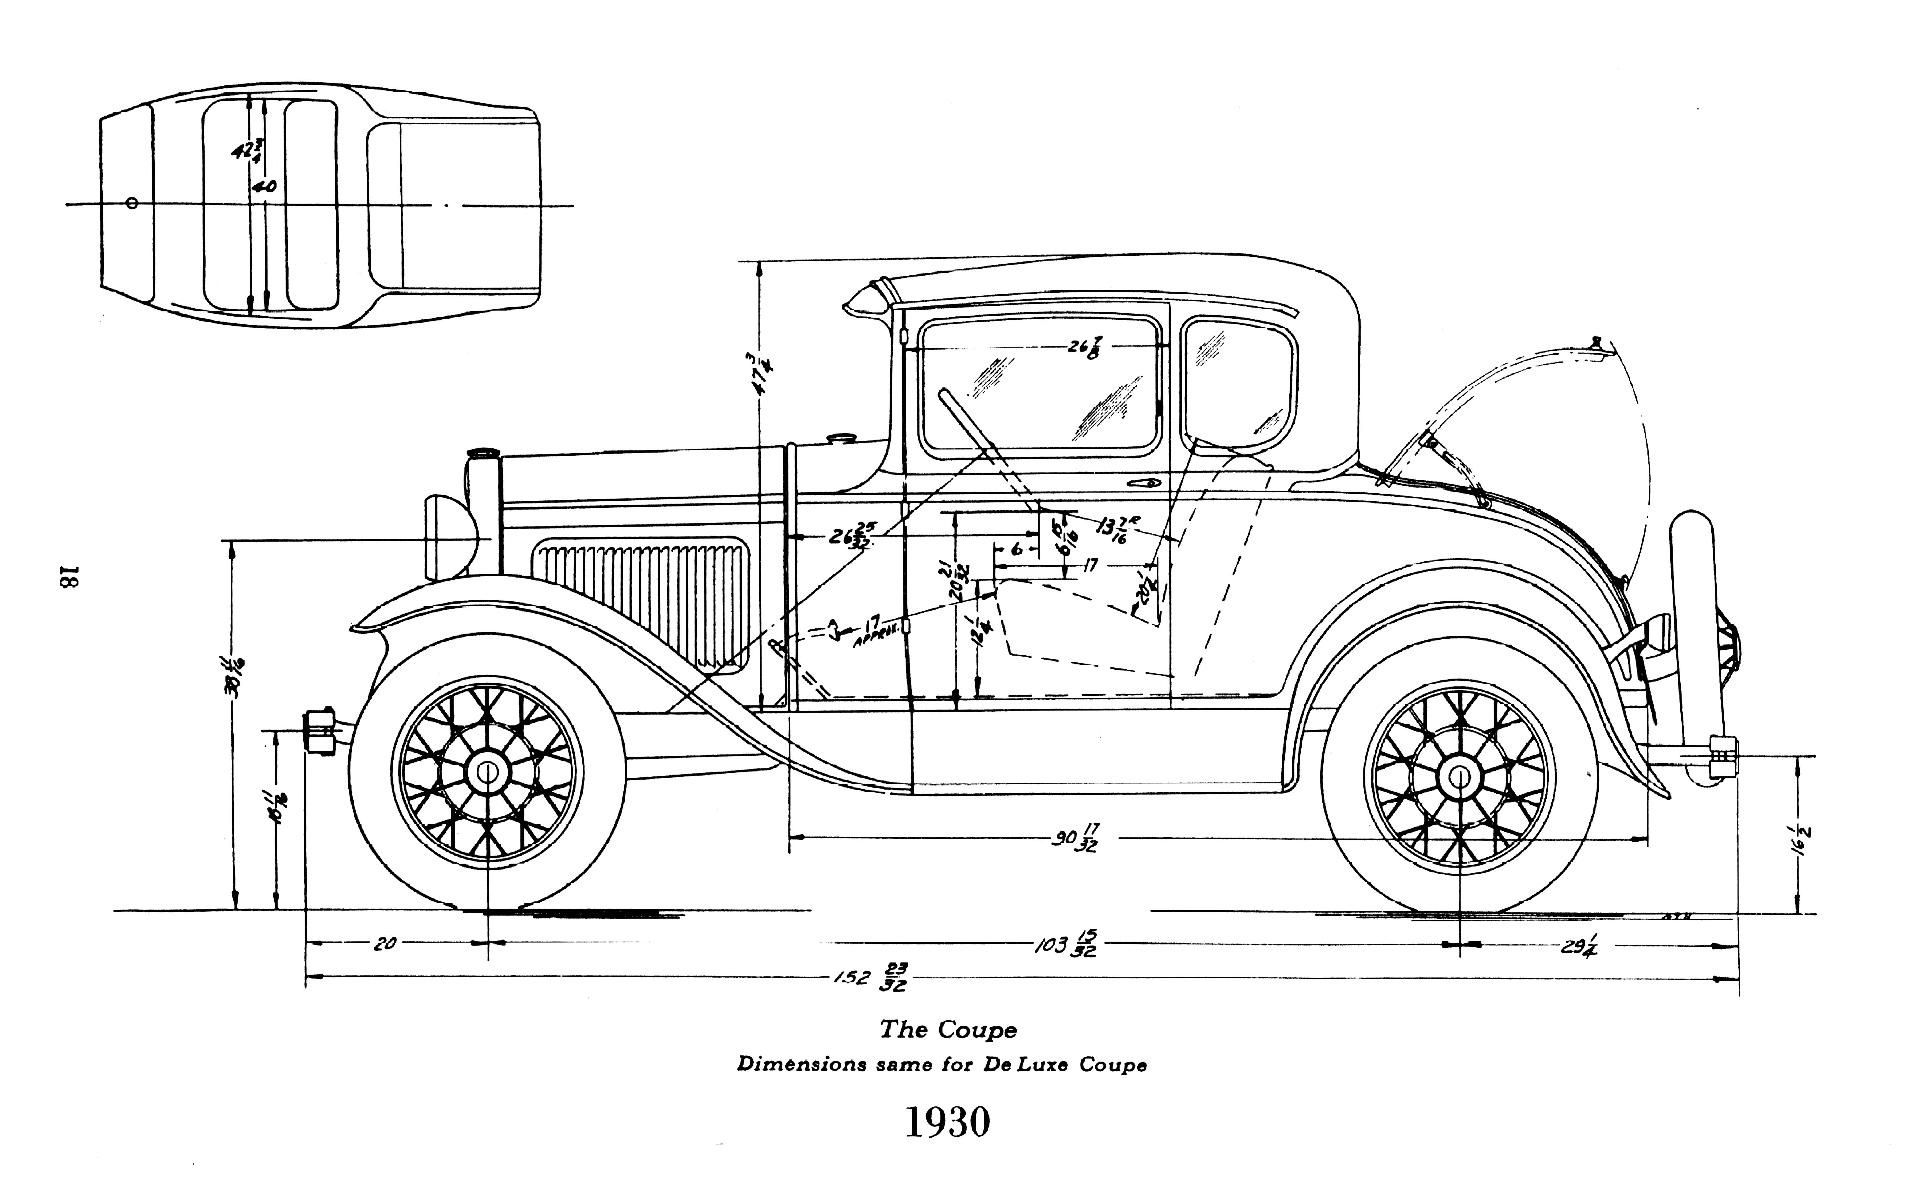 model t ford wiring diagram application integration architecture 1930 a library